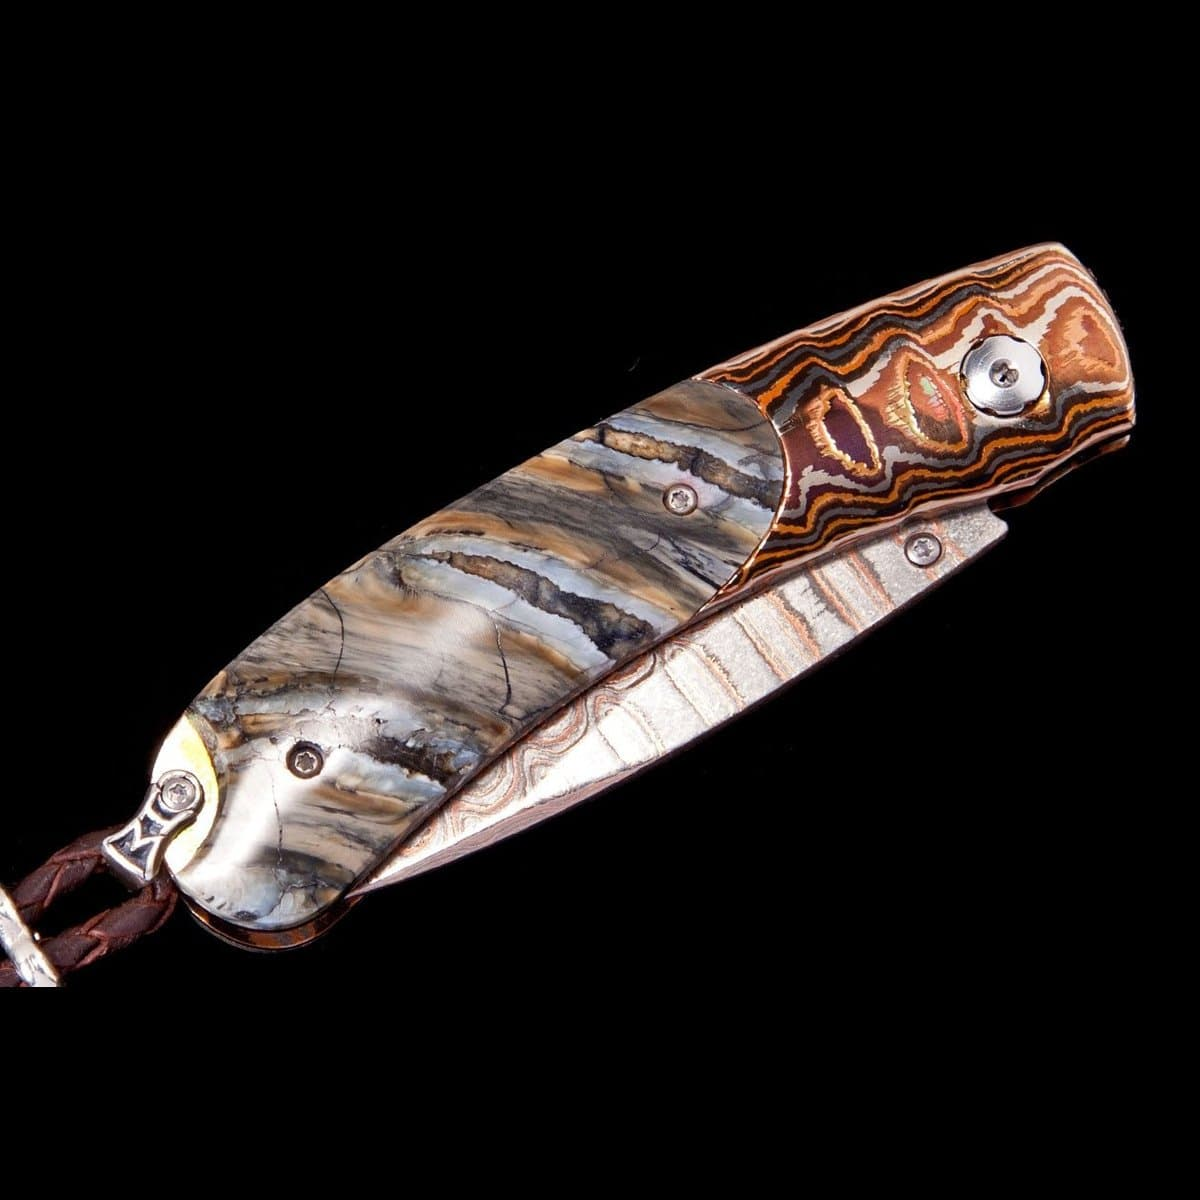 Kestrel Epic Limited Edition Knife - B09 EPIC-William Henry-Renee Taylor Gallery